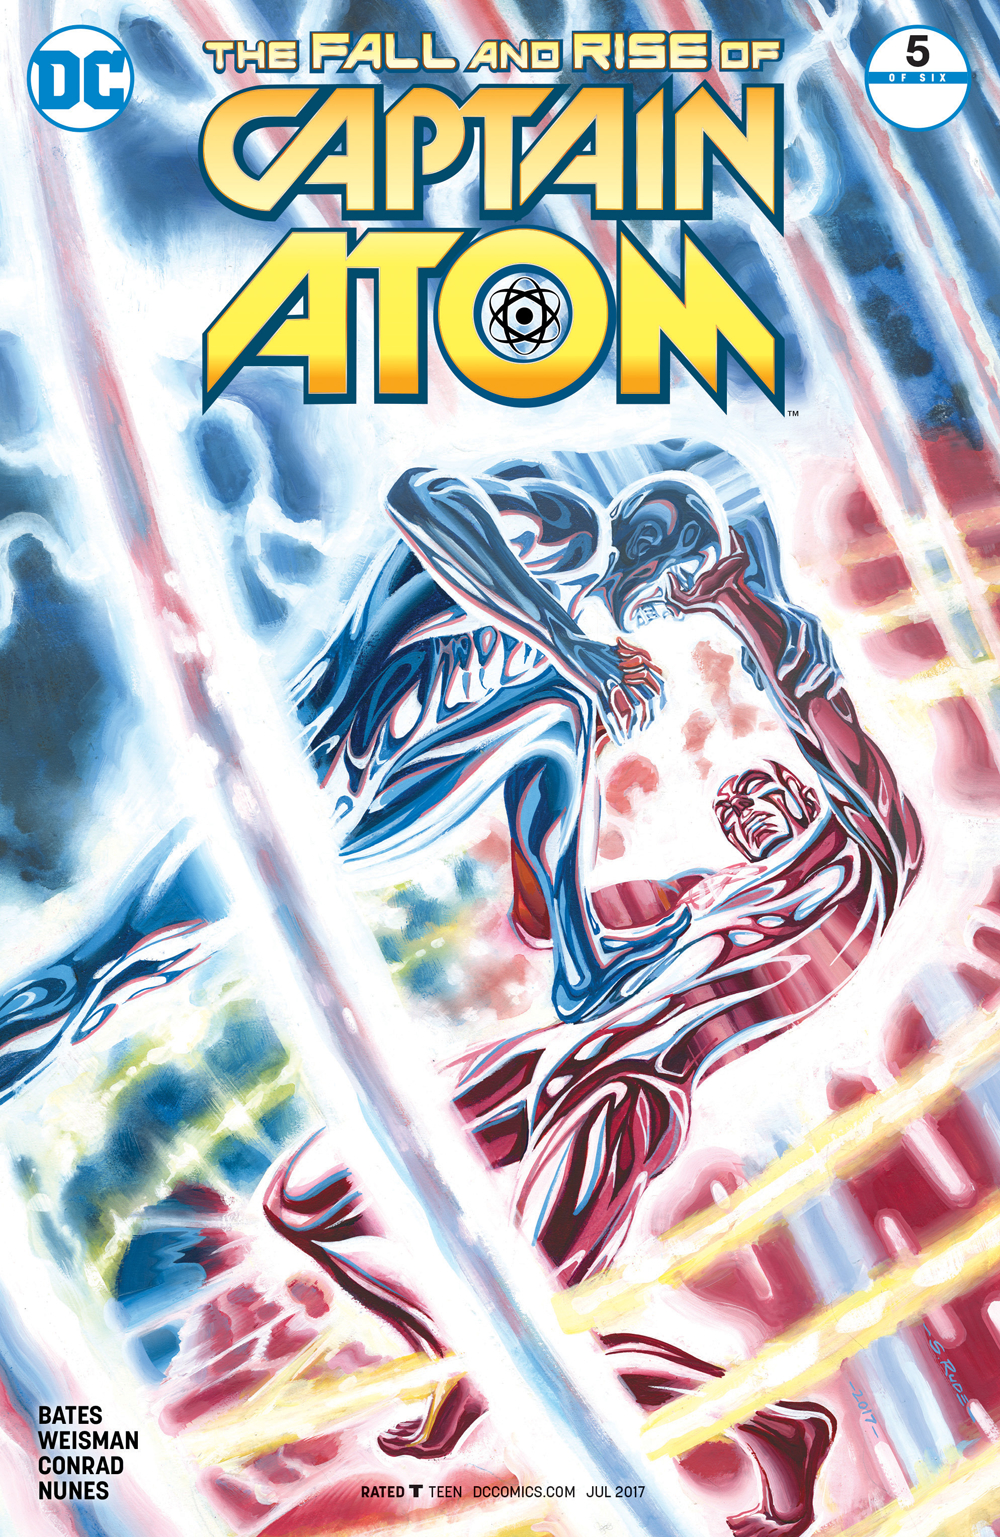 FALL AND RISE OF CAPTAIN ATOM #5